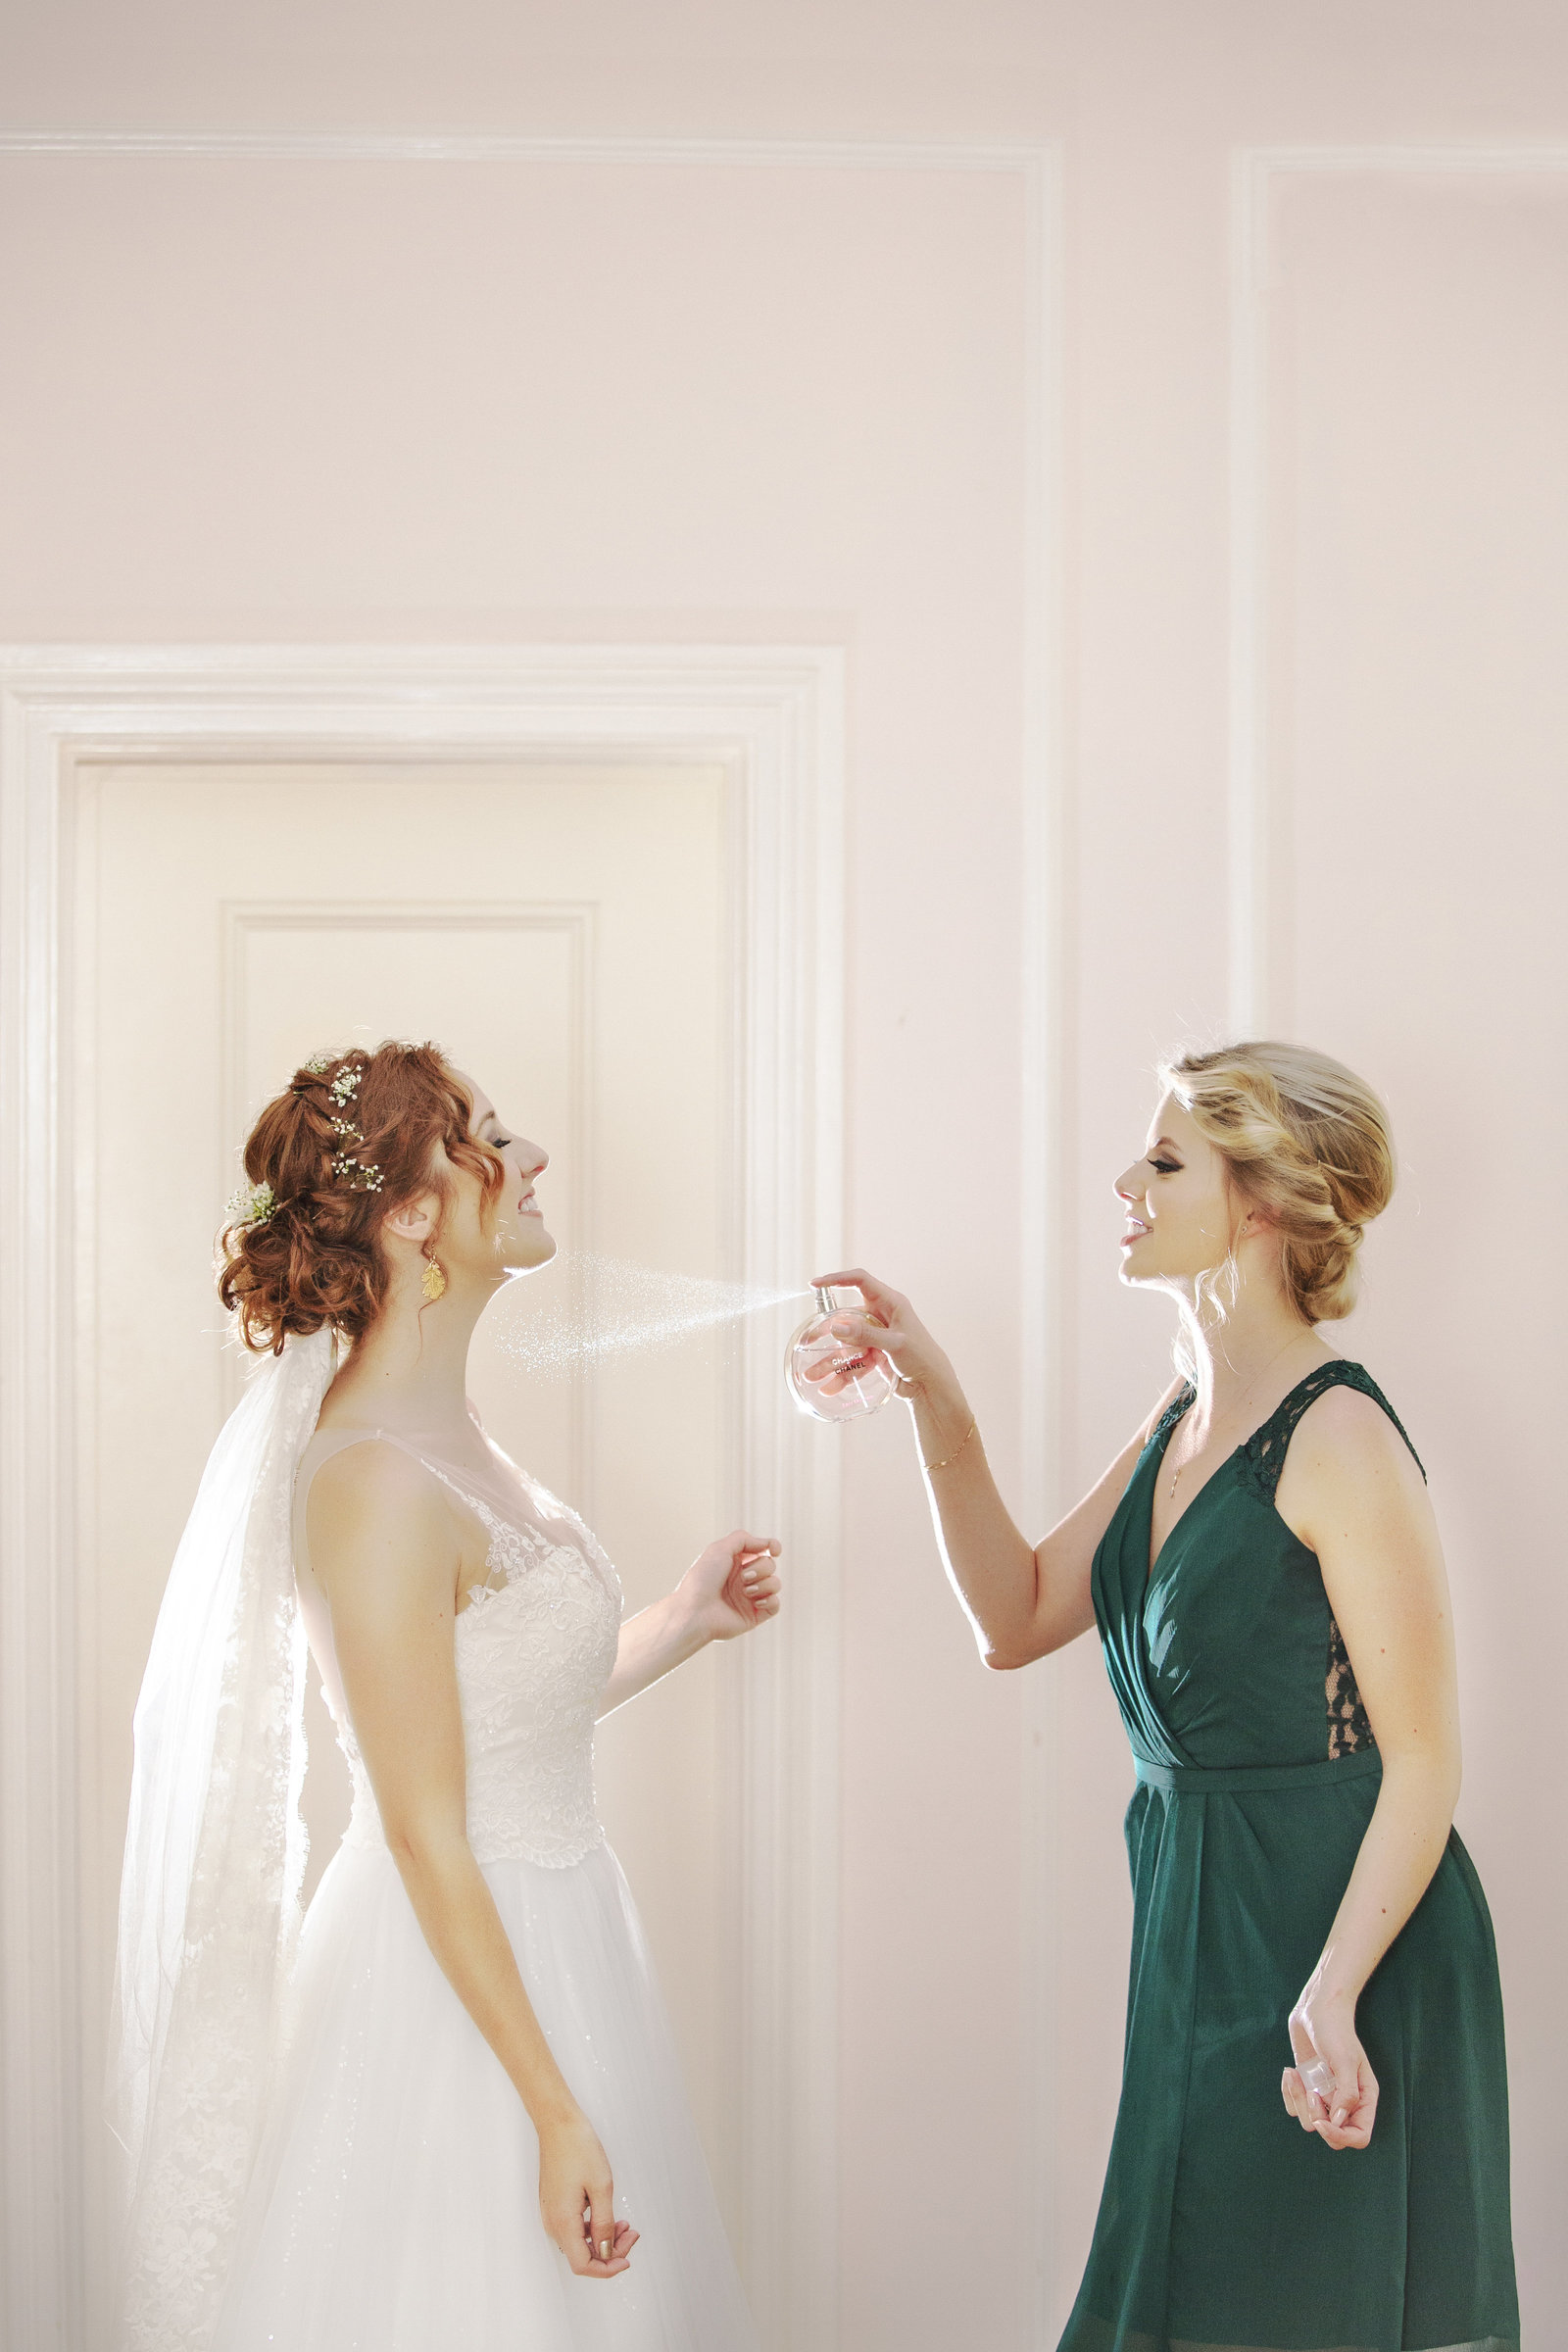 maid of honor spraying perfume on the bride